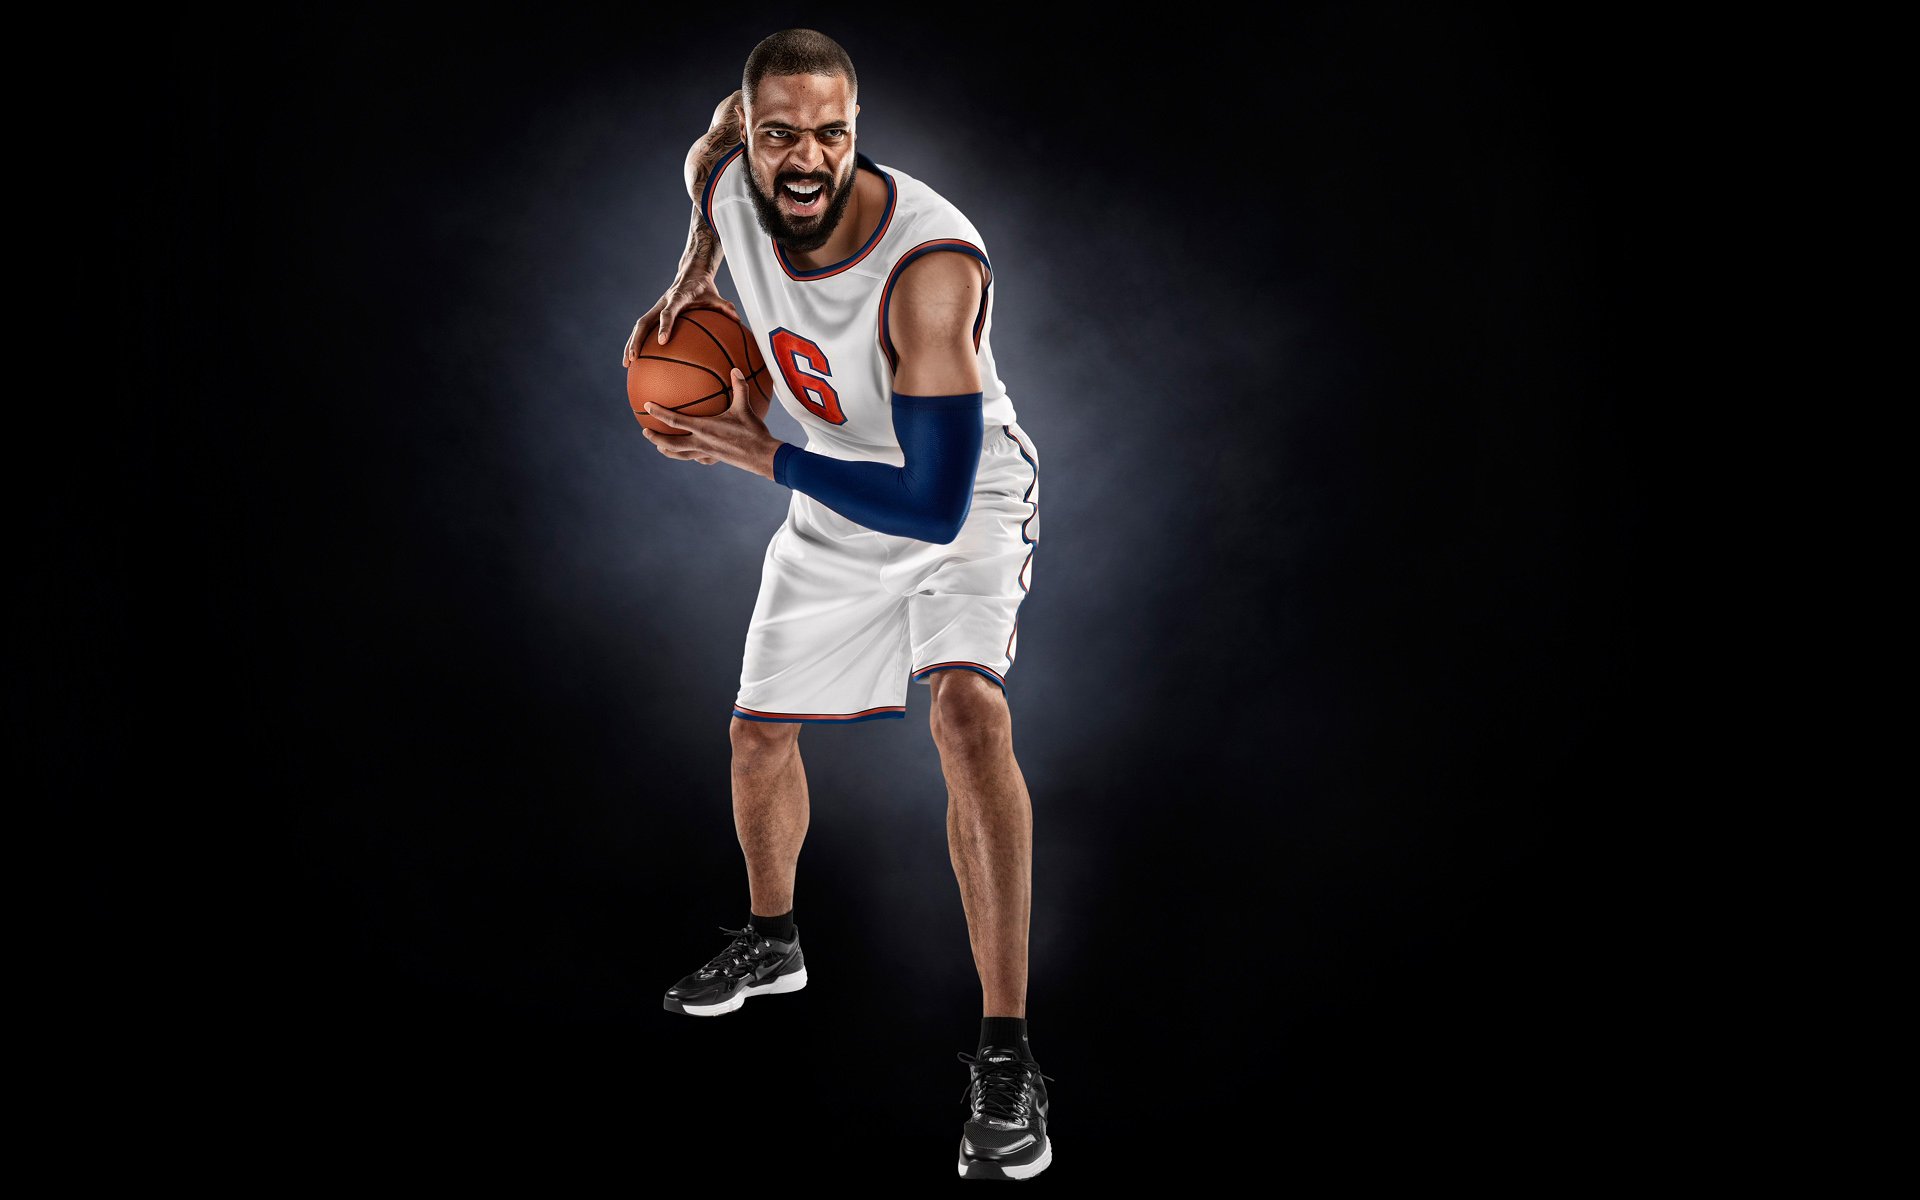 Tyson Chandler advertising campaign by Blair Bunting